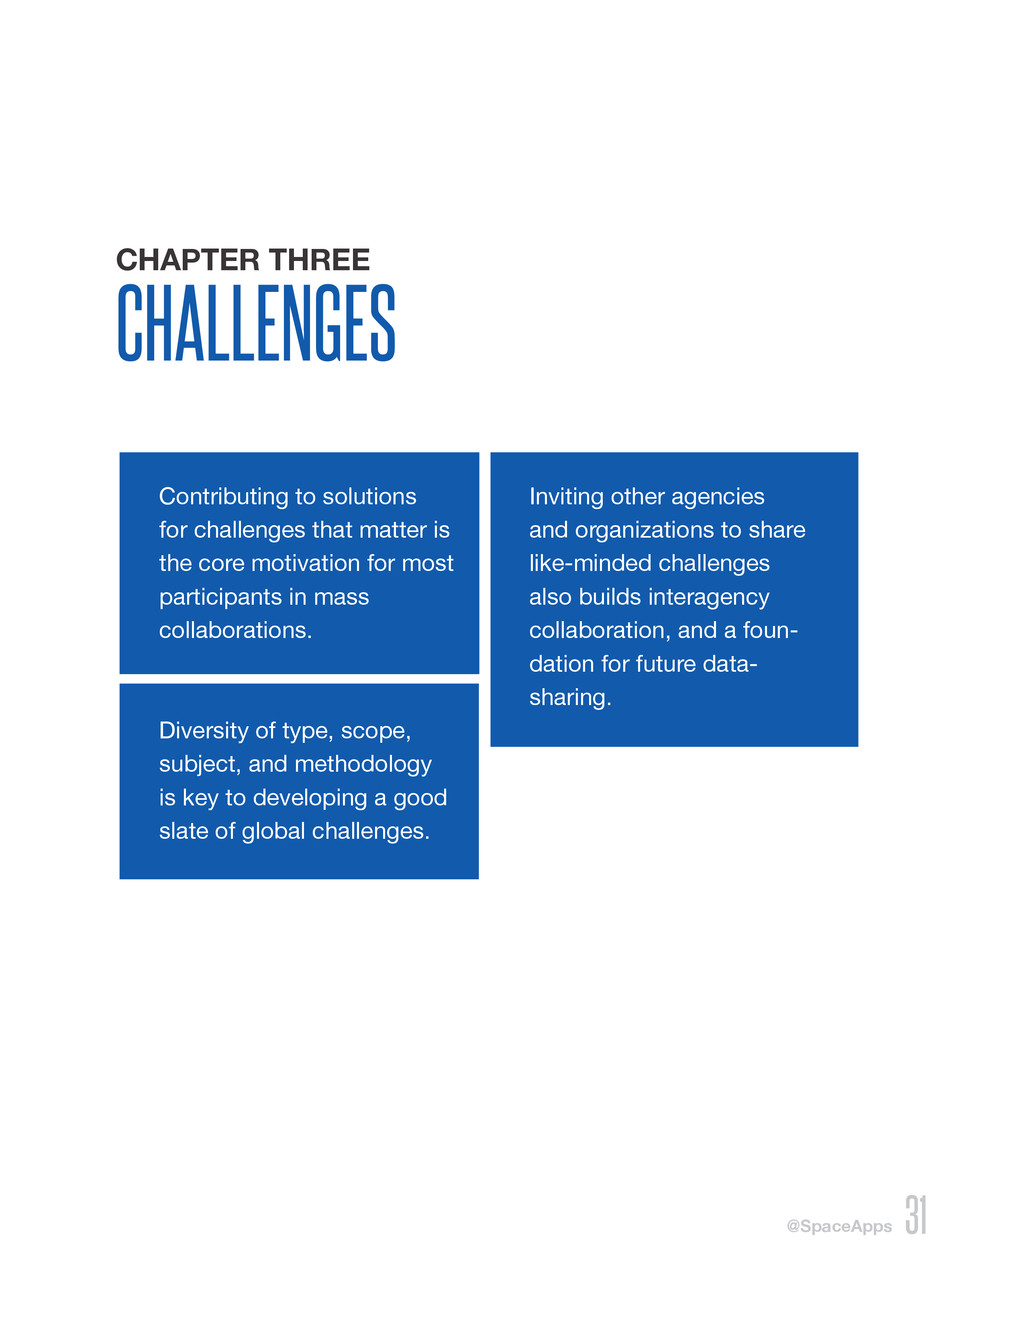 @SpaceApps 31 CHAPTER THREE CHALLENGES Contribu...